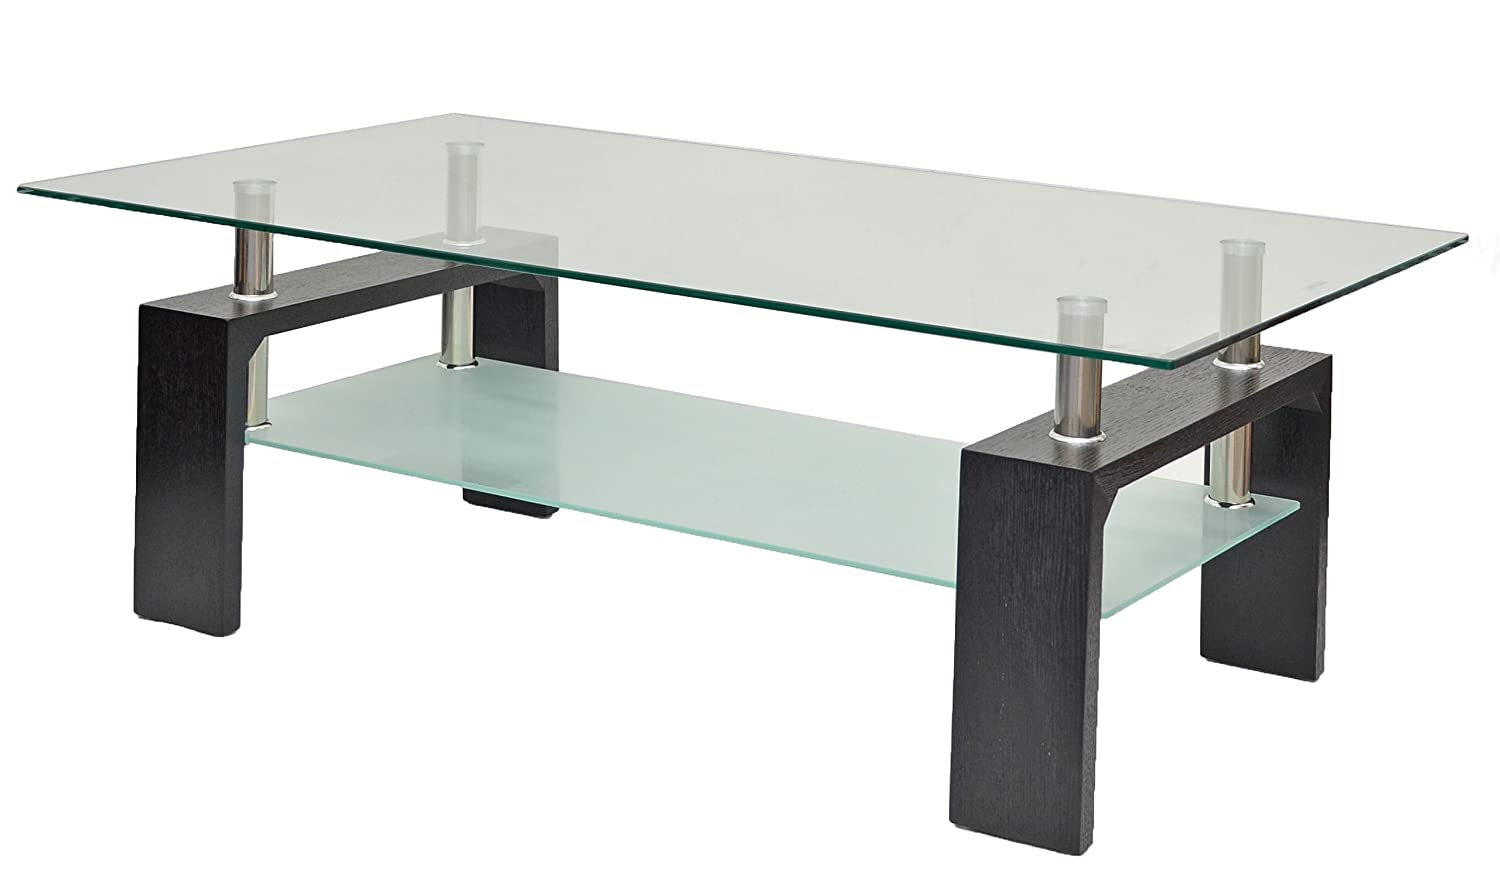 luxus table basse transparente ikea id es de conception de table basse. Black Bedroom Furniture Sets. Home Design Ideas